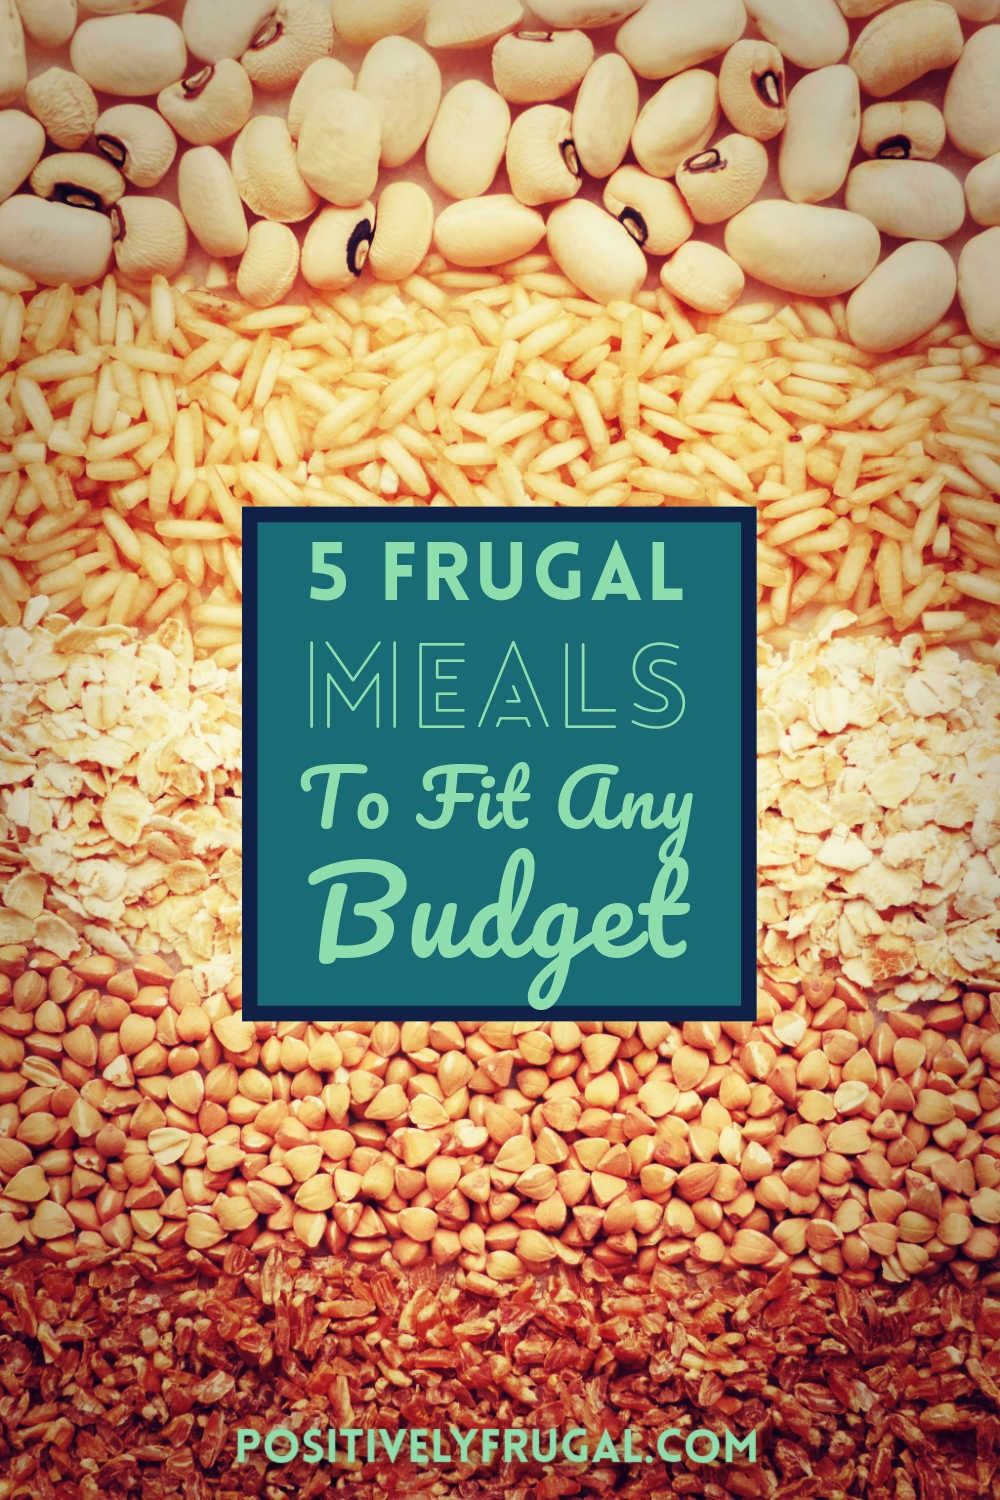 5 Frugal Meals to Fit Any Budget by PositivelyFrugal.com